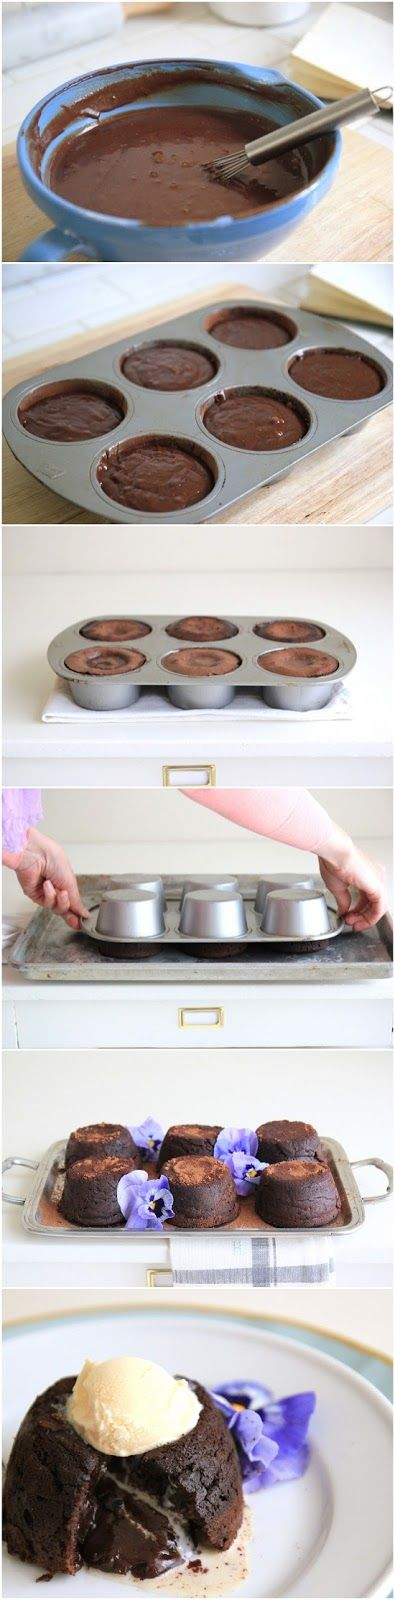 Photo Place: Chocolate Molten Cakes